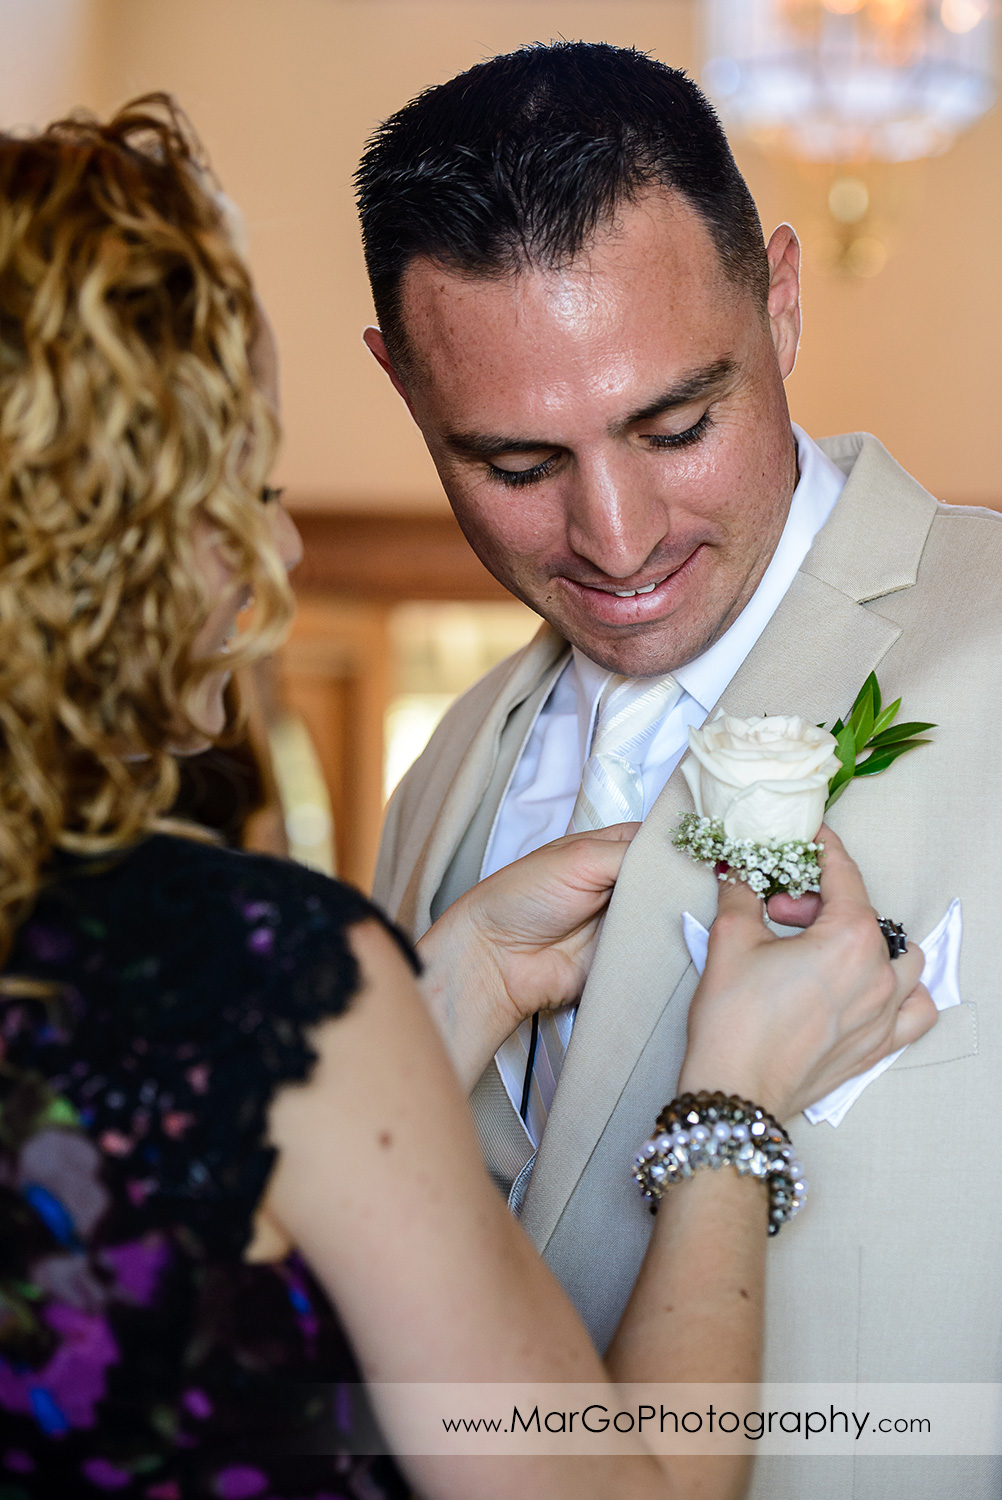 women putting on groom's buttonhole